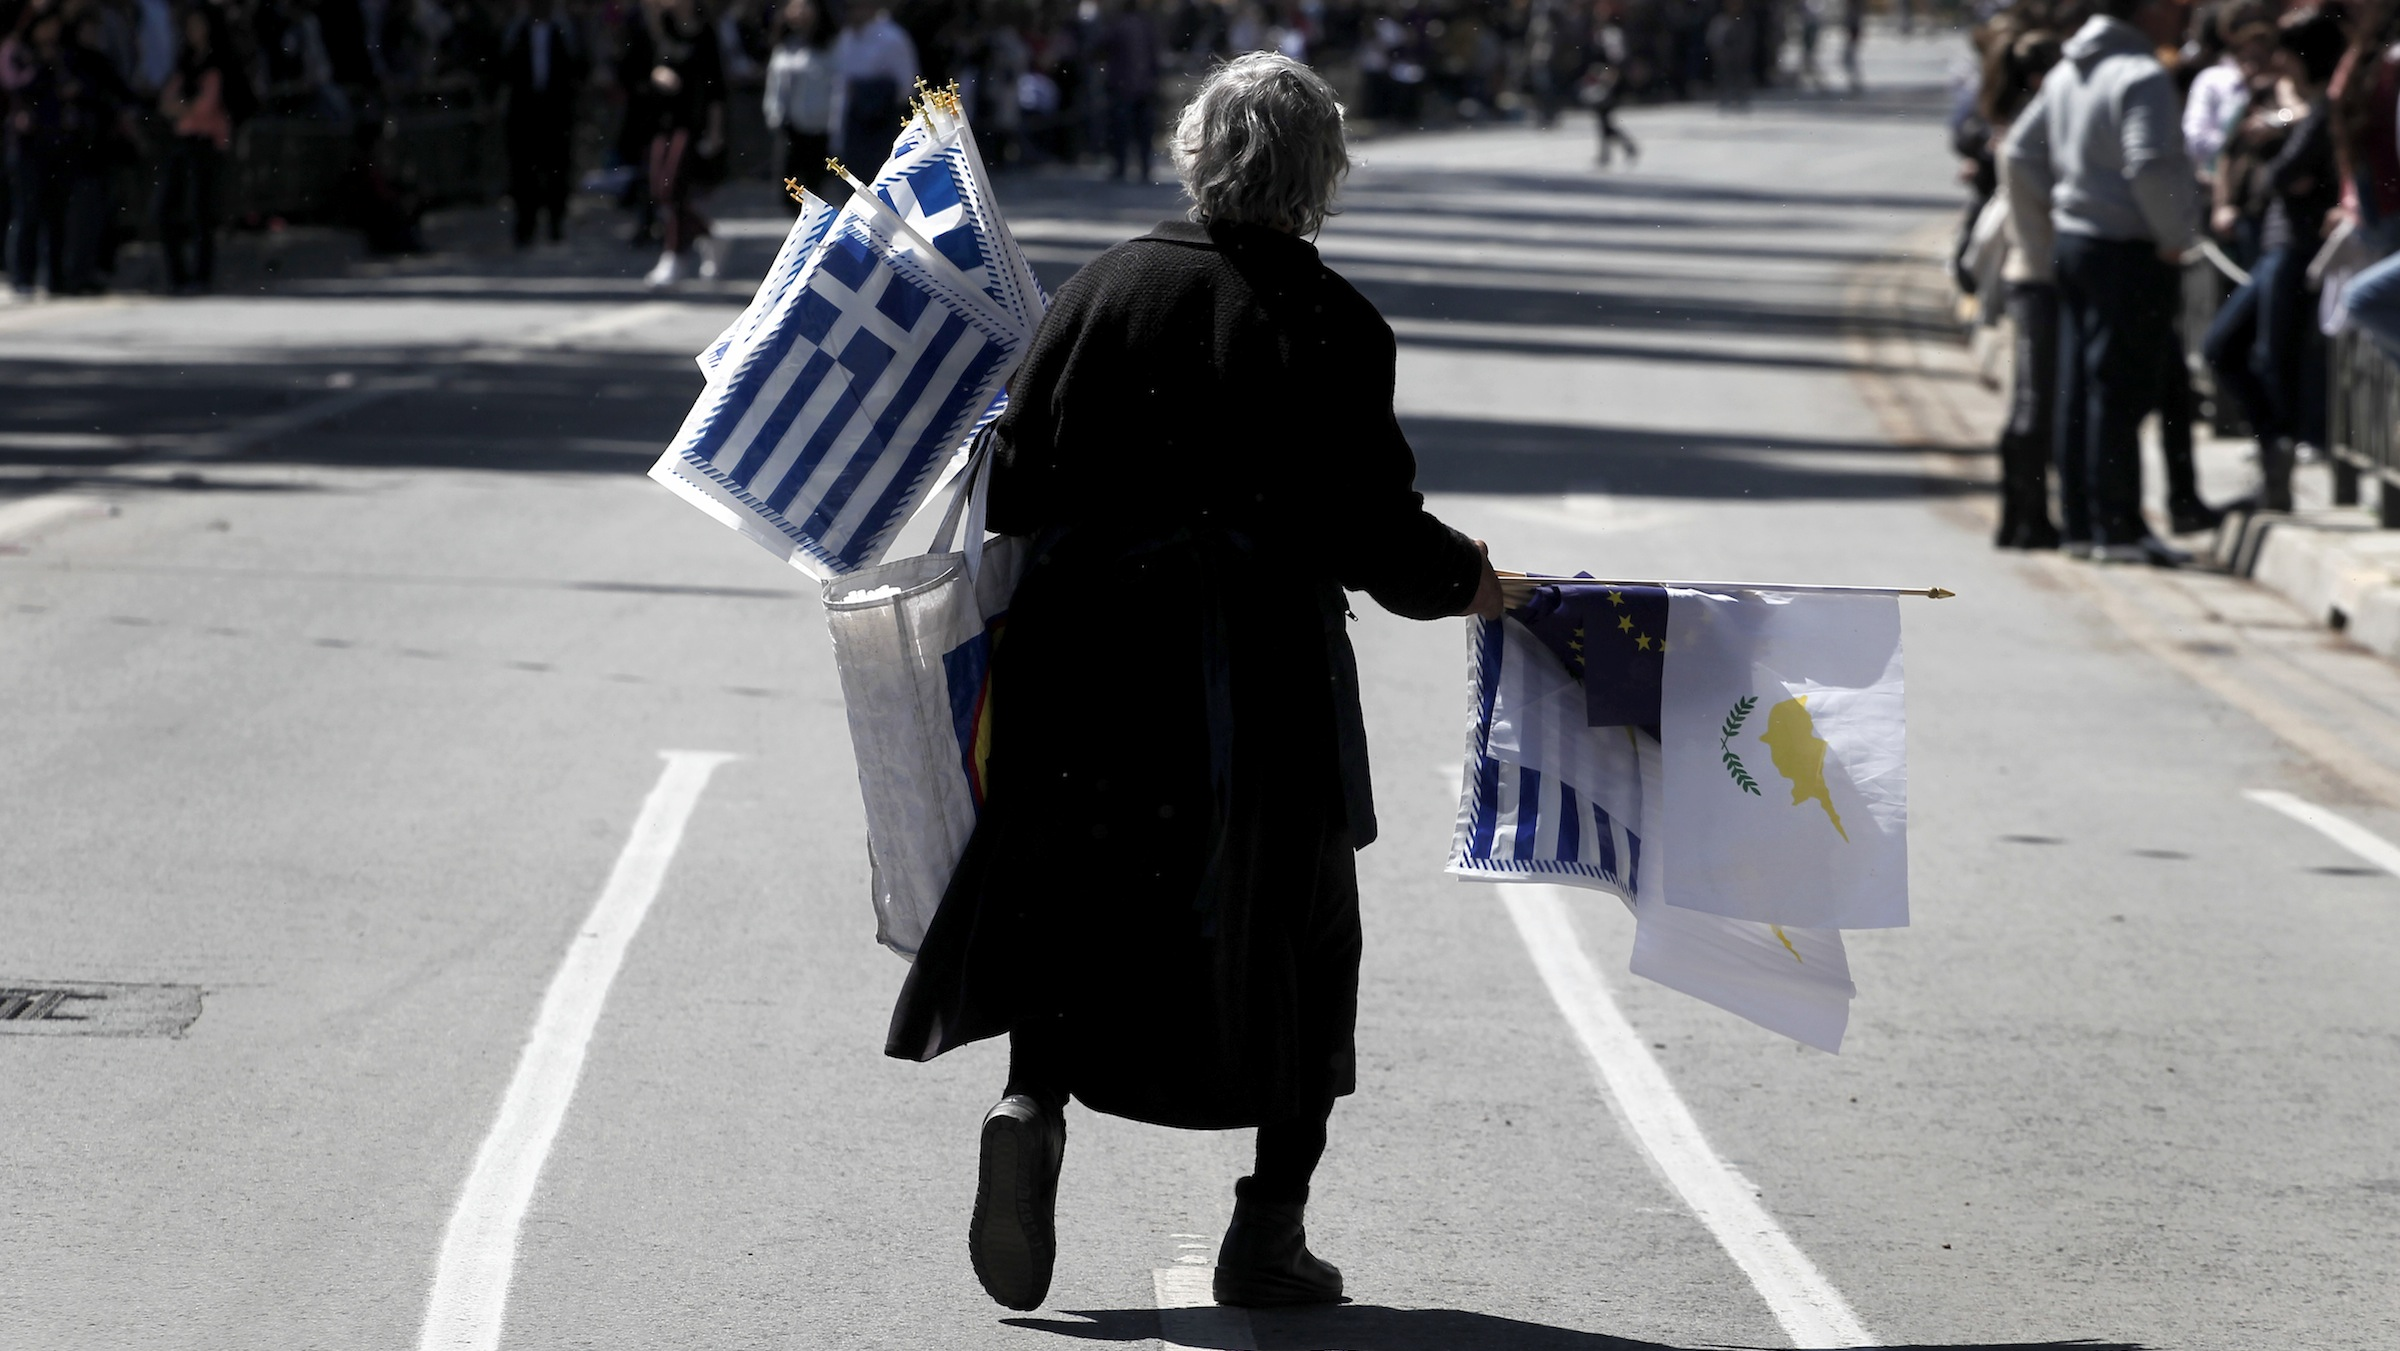 An elderly woman sells Greek, Cypriot, and EU flags before the start of a parade for Greek Independence Day celebrations in capital Nicosia, Cyprus, Monday, March 25, 2013. Cyprus secured what its politicians described as a ìpainfulî solution to avert imminent bankruptcy, agreeing early Monday to slash its oversize banking sector and make large account holders take losses to help pay to secure a last-minute euro10 billion (US$13 billion) bailout. (AP Photo/Petros Giannakouris)